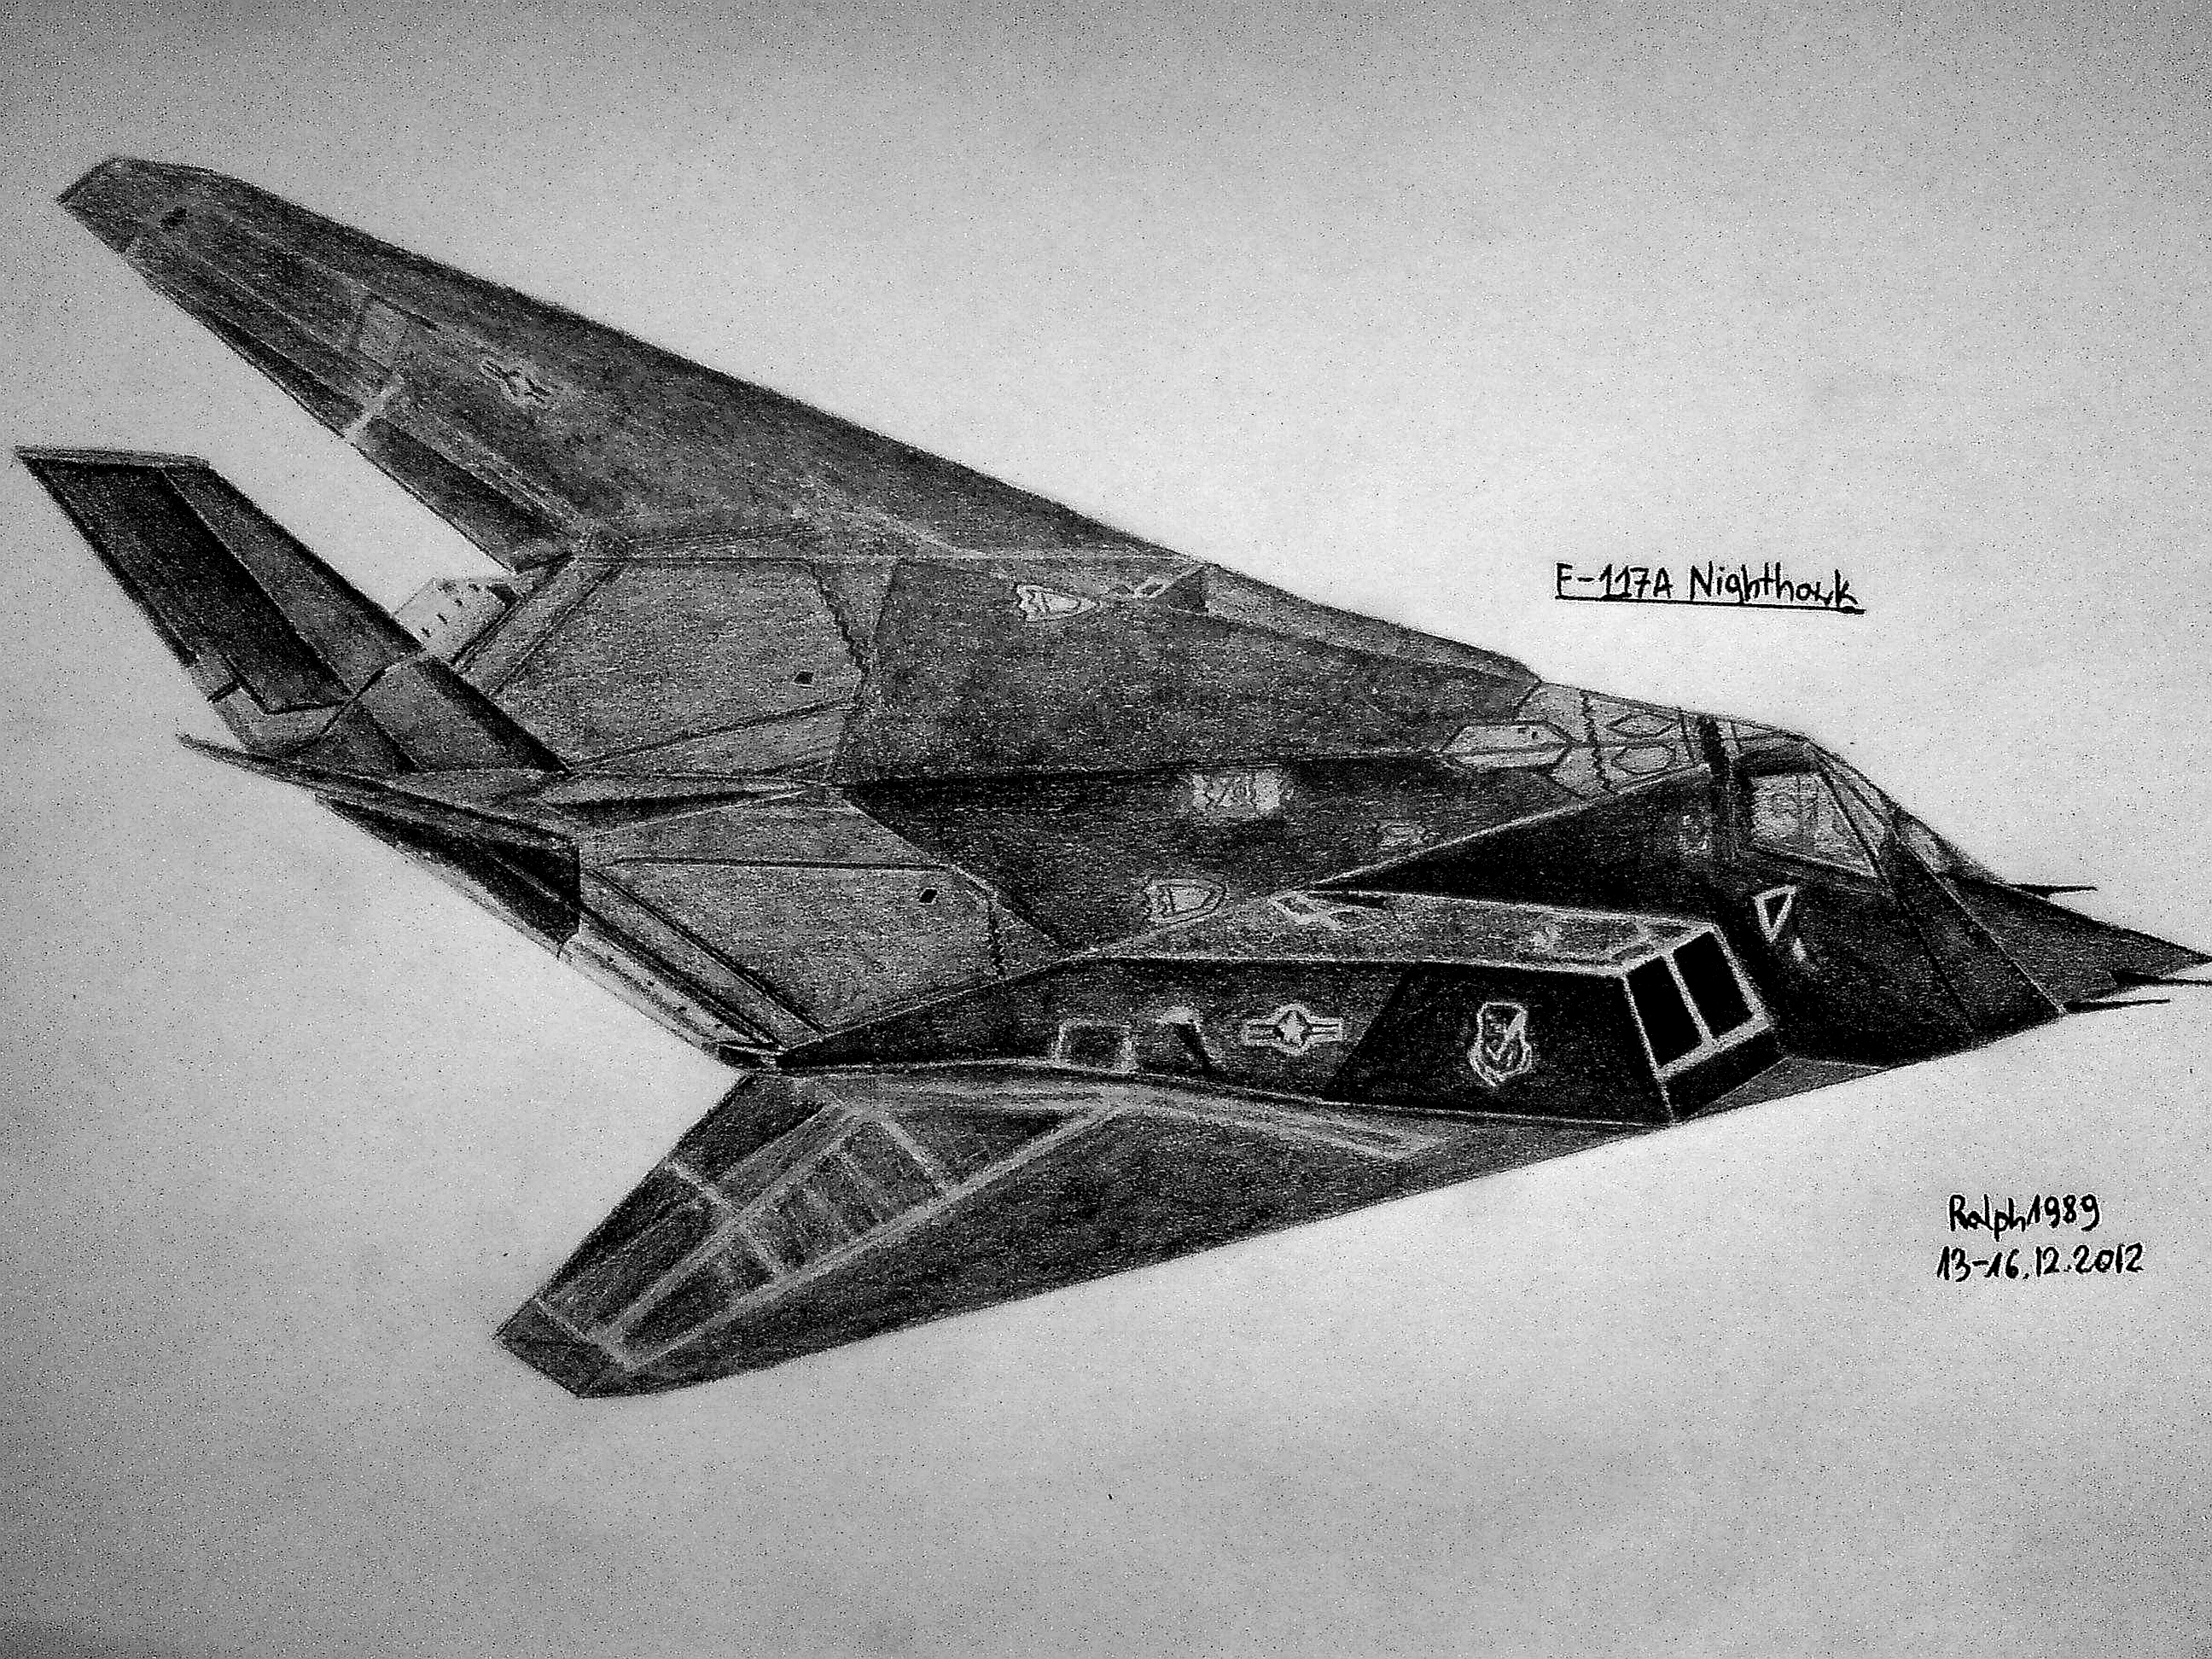 F 117 Stealth Fighter Drawing F-117A Nighthawk #1 by...